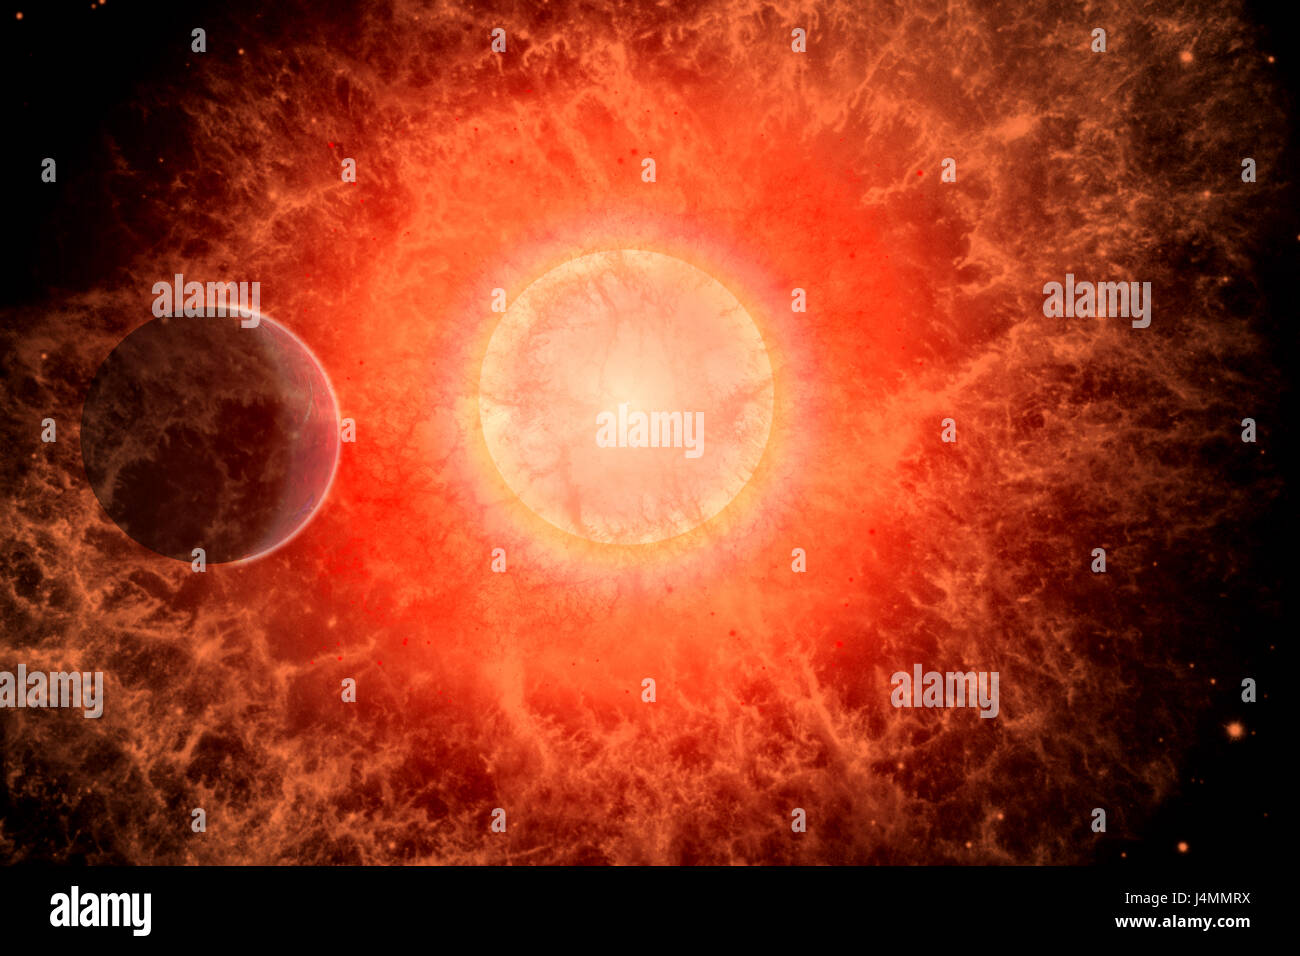 A Supernova , The End Of A Dying Star. - Stock Image